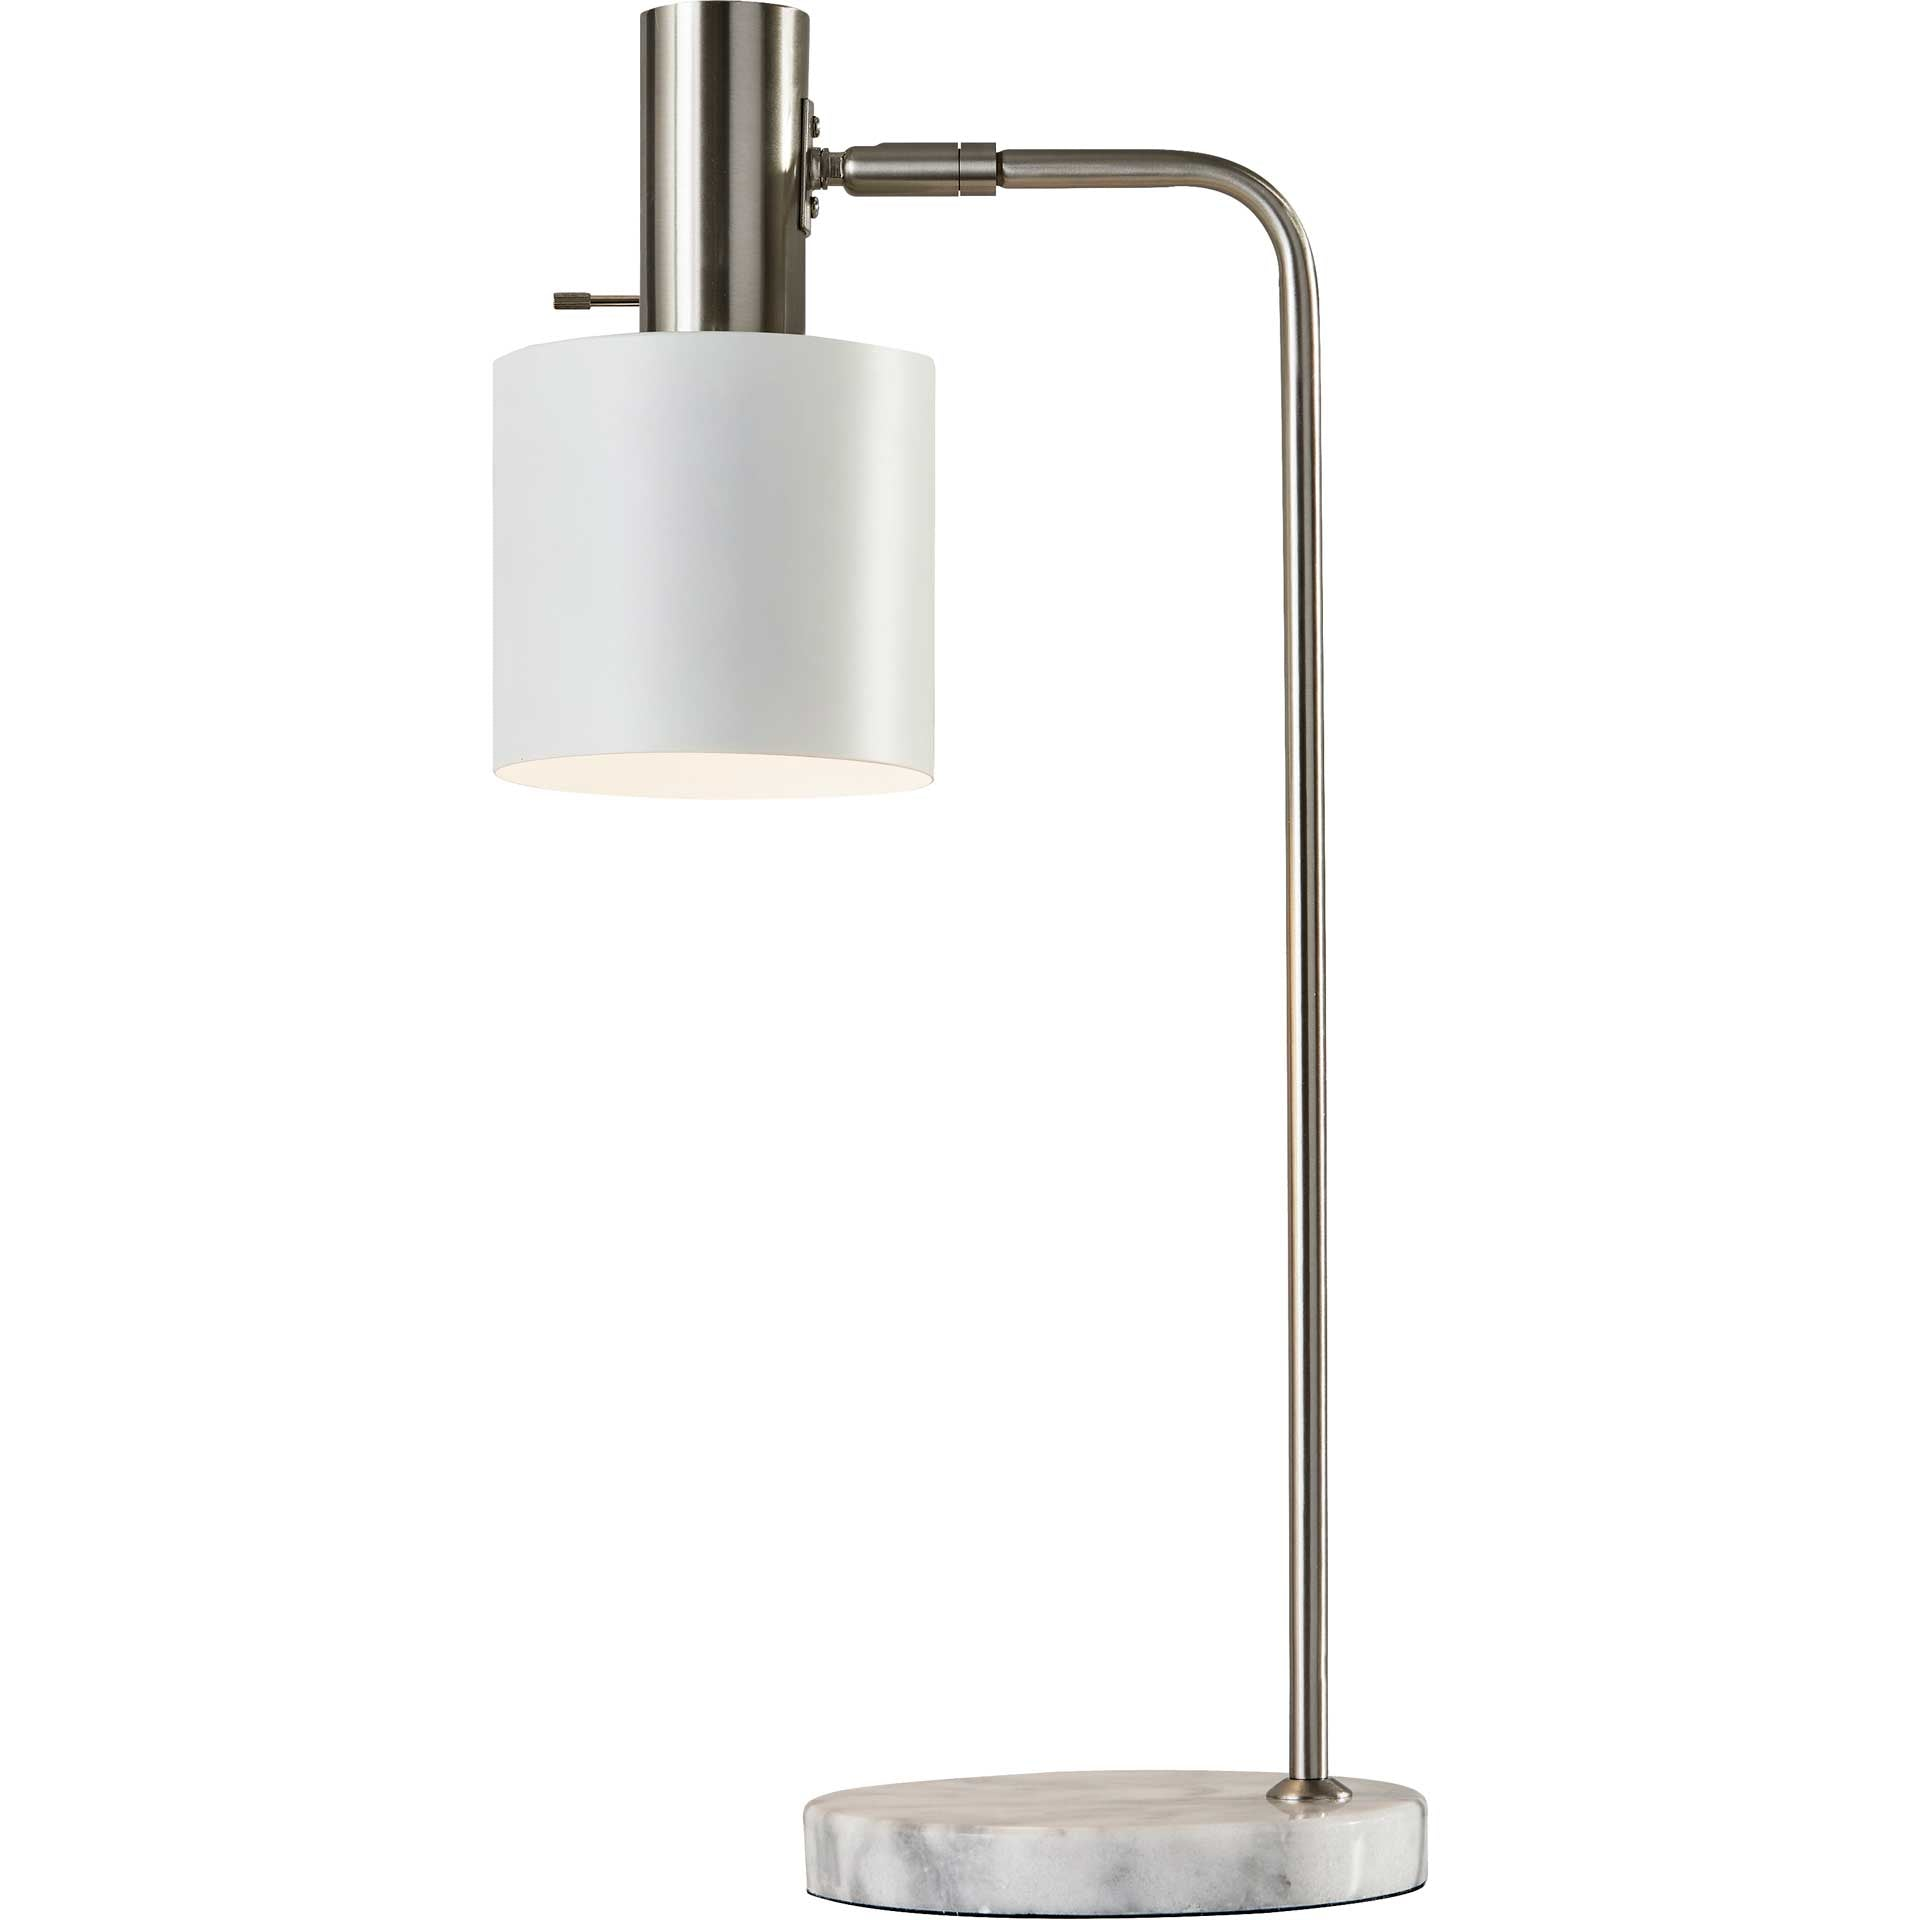 Epinal Desk Lamp Brushed Steel/White